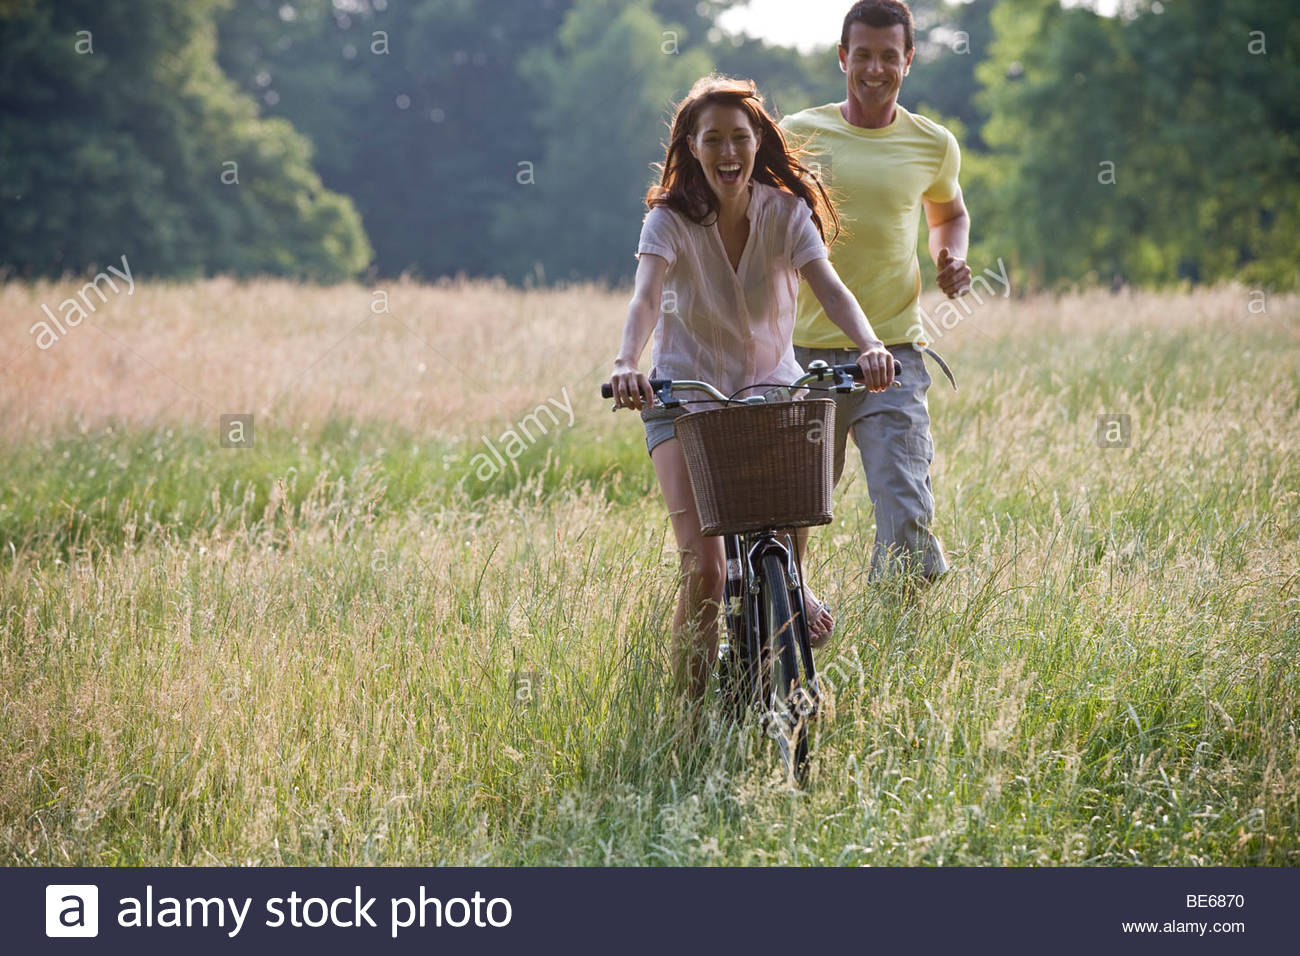 A young woman riding a bicycle through a field with her boyfriend running after her - Stock Image